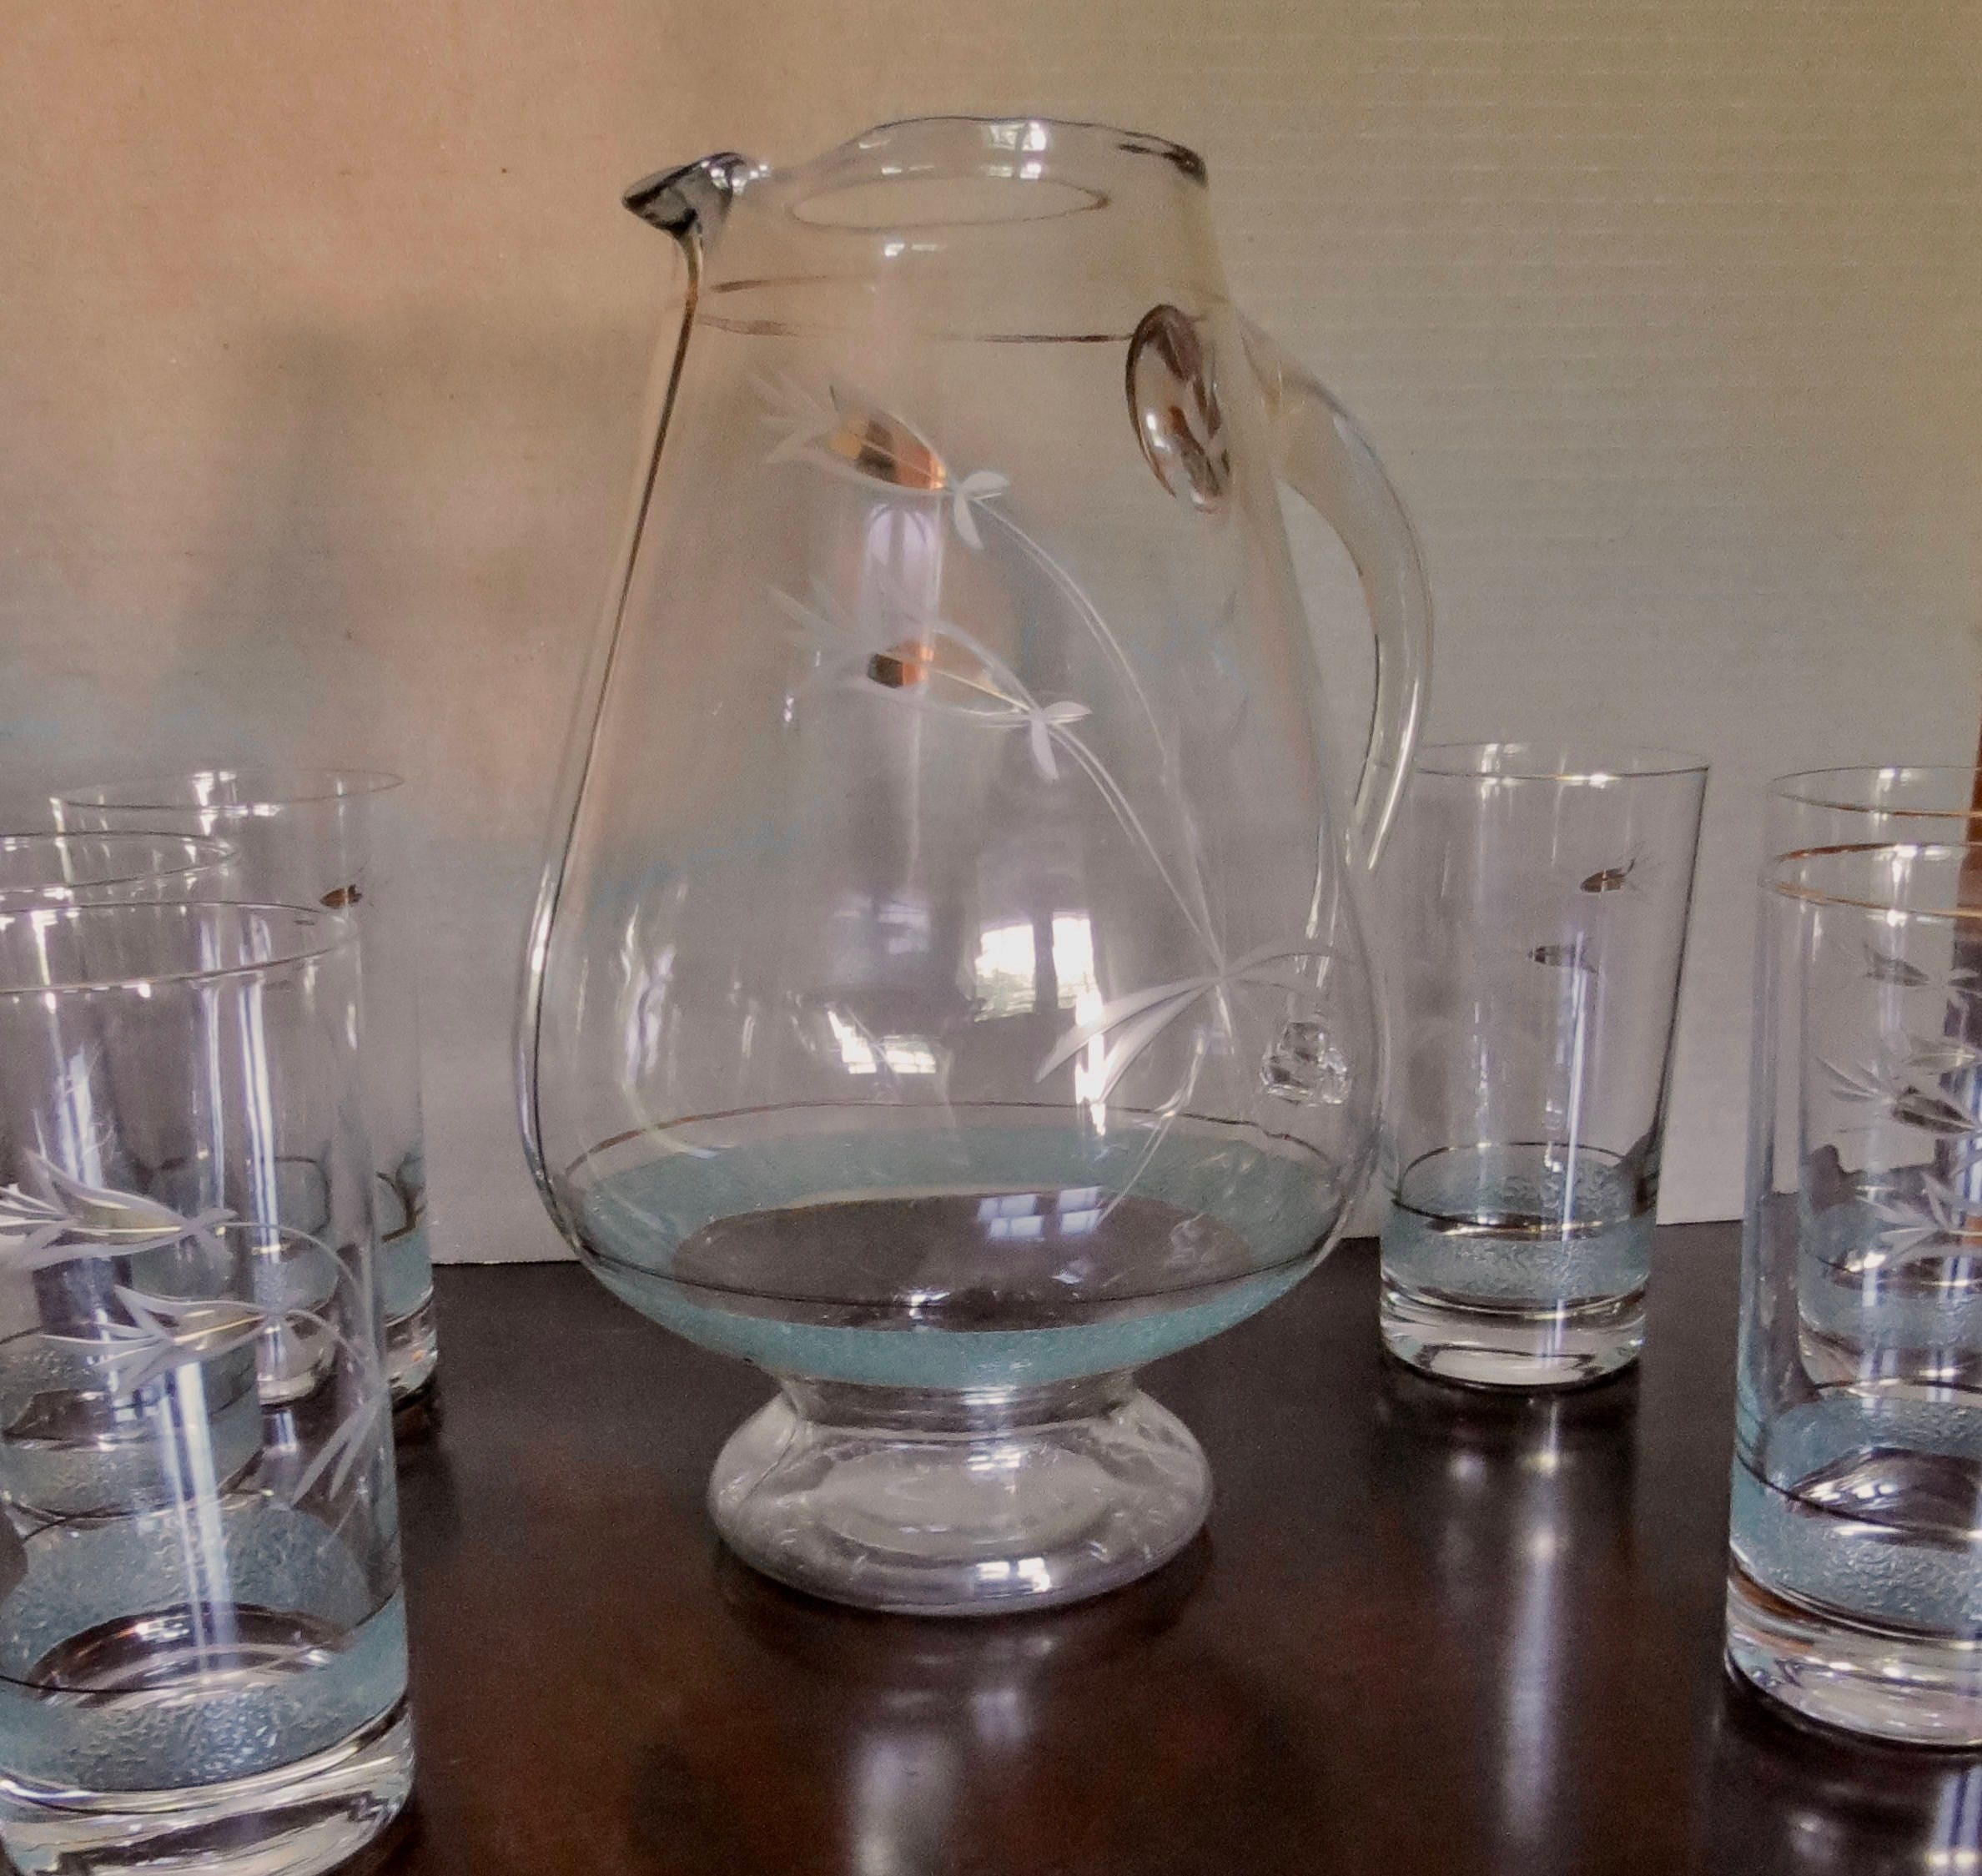 Image 3 of Vintage Pitcher Set - Mid Century Turquoise and Gold Graphics, Pitcher with Six